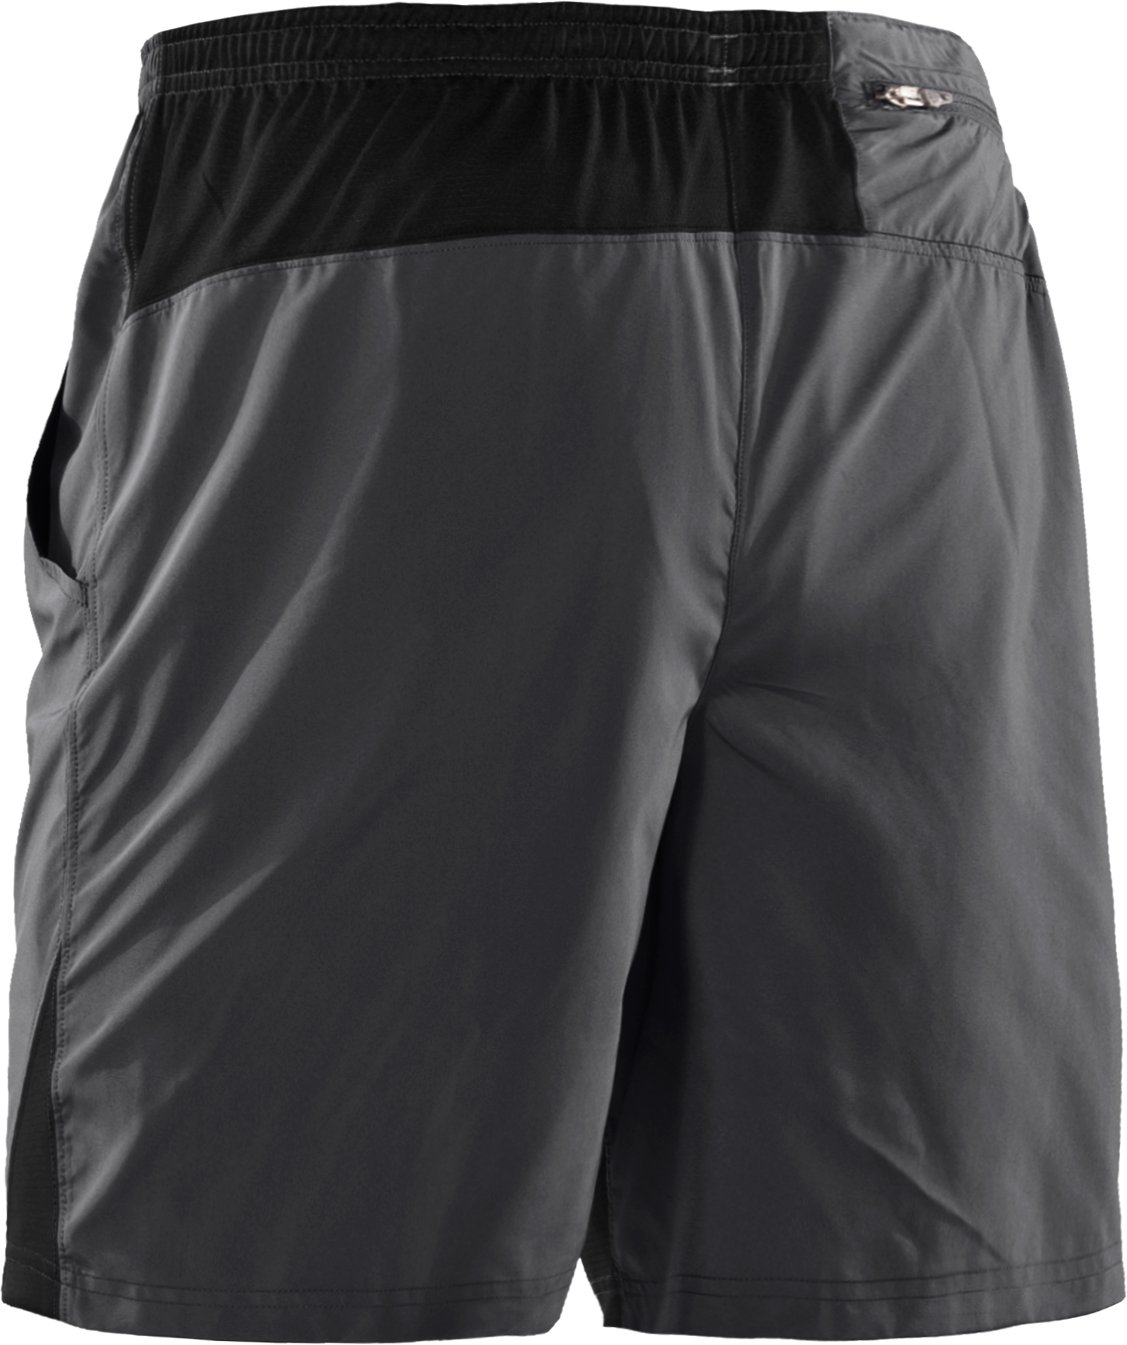 "Men's Draft UA Catalyst 7"" Shorts, Graphite, undefined"